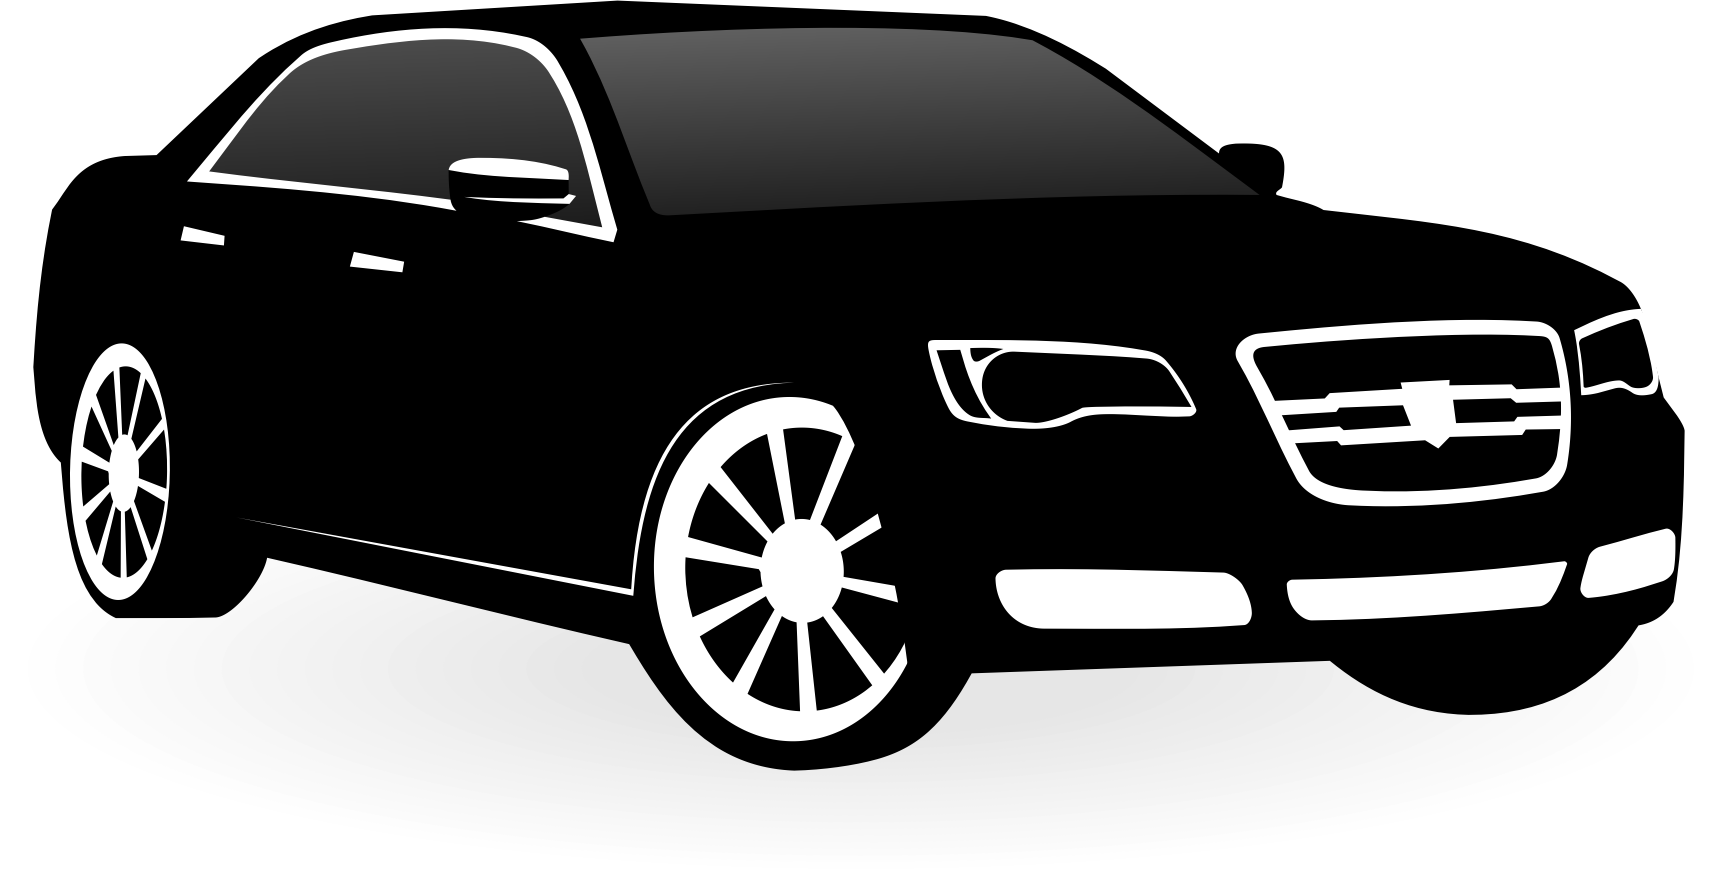 Car clipart vector jpg black and white library Clipart - Chrysler 300c vector jpg black and white library